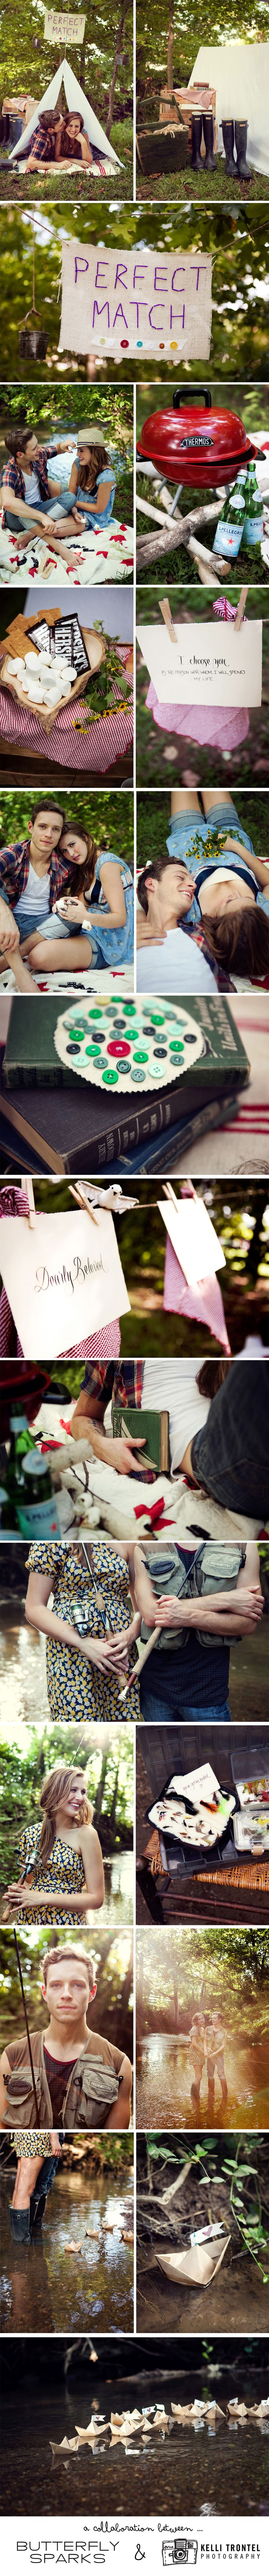 Lovely camping themed e-session. Sweet engagement shoot ideas